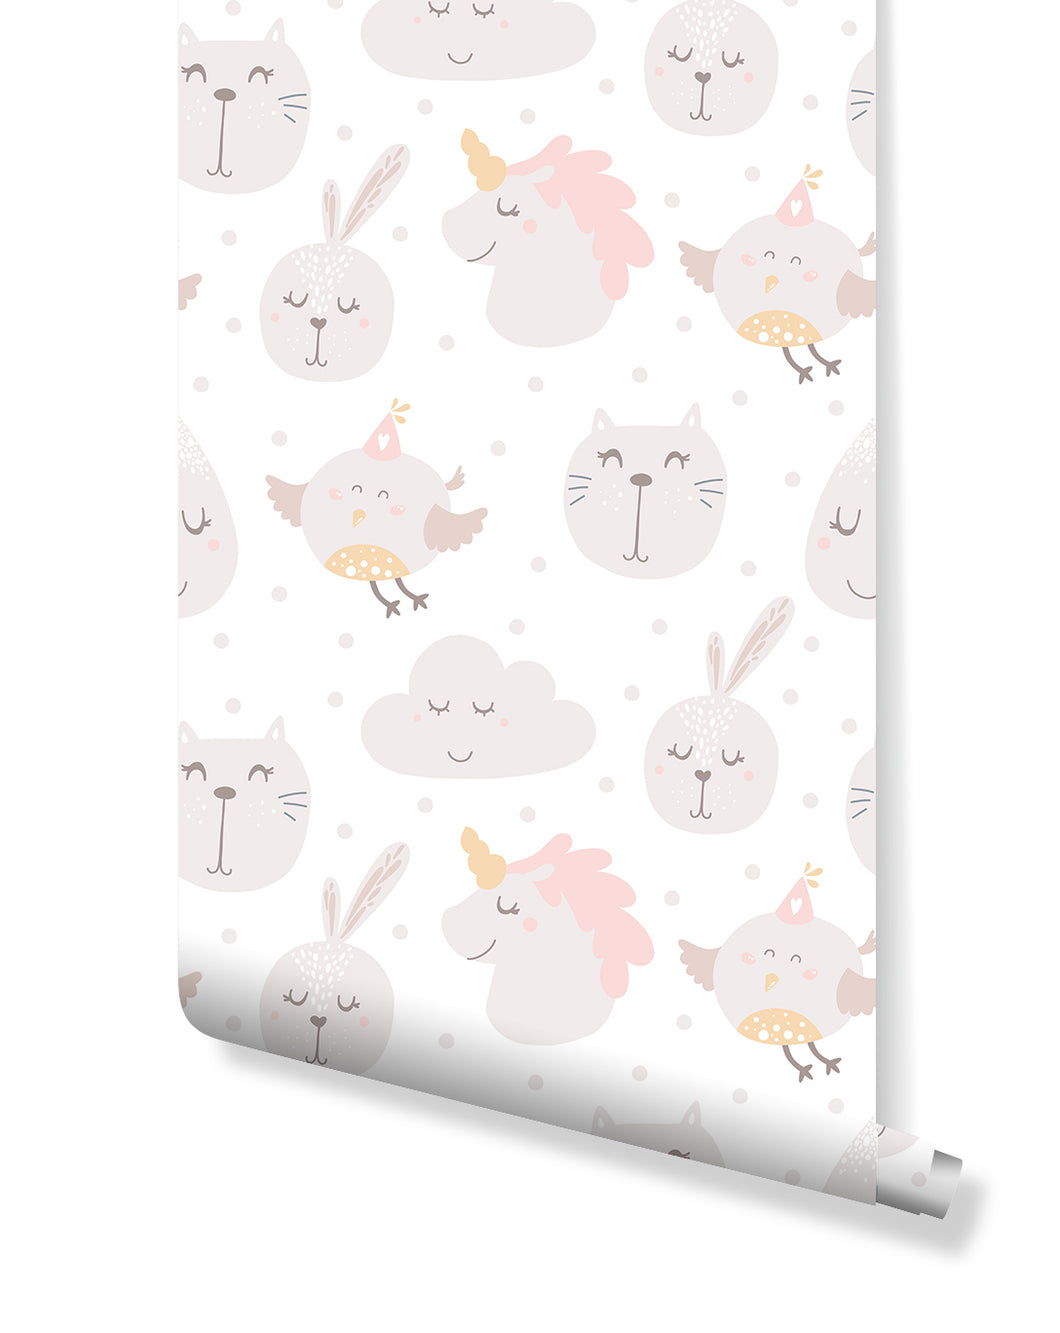 Pastel Color Kids Room Removable Wallpaper with Unicorns Birds Rabbits and Cats, Self Adhesive Wall Decor with Lovely Animals CC144